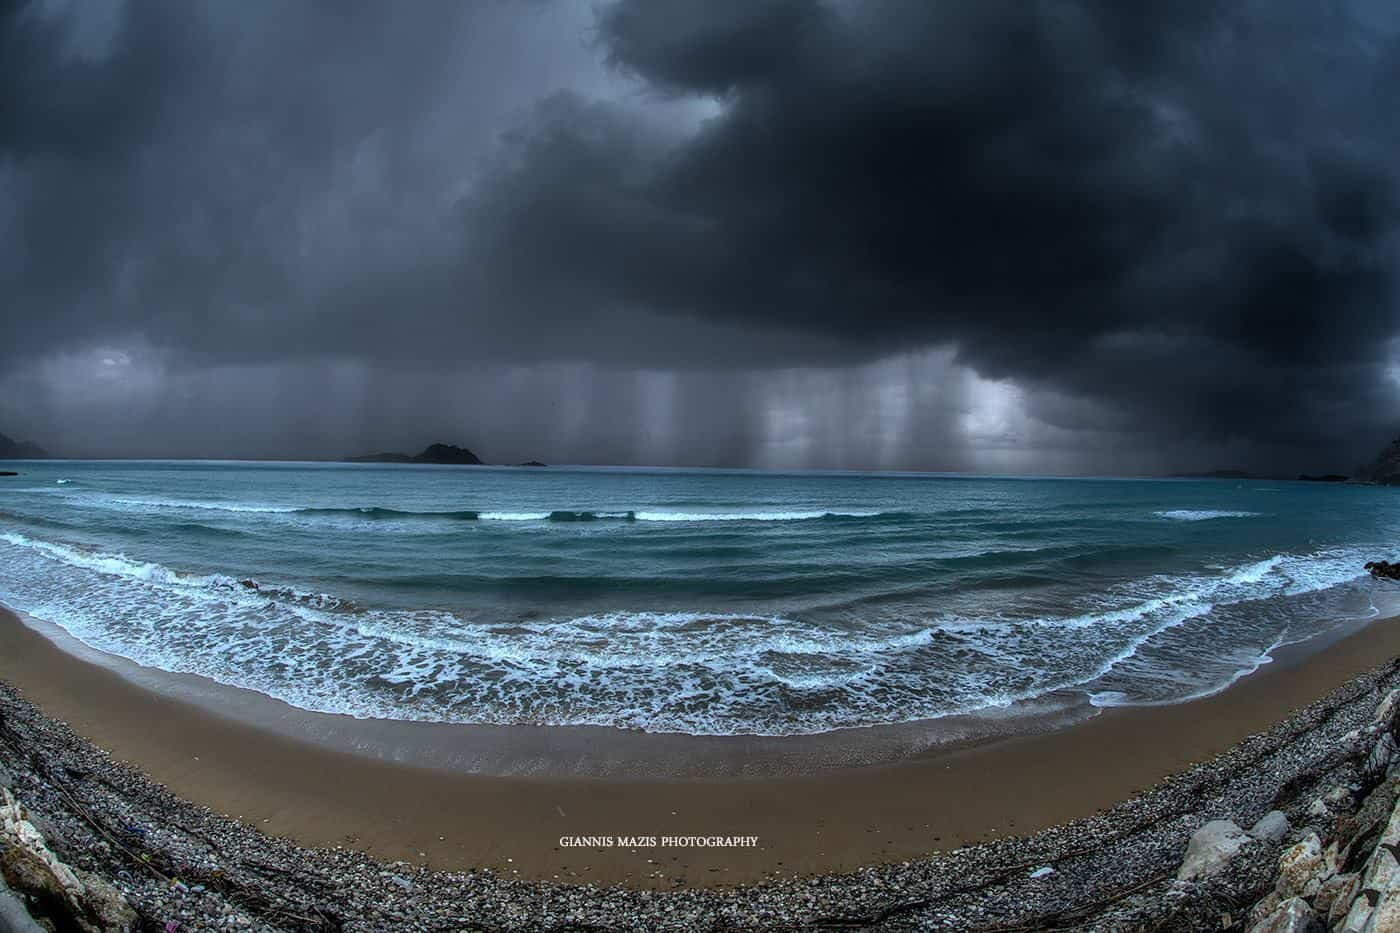 stunning storm in arillas beach corfu island greece!!